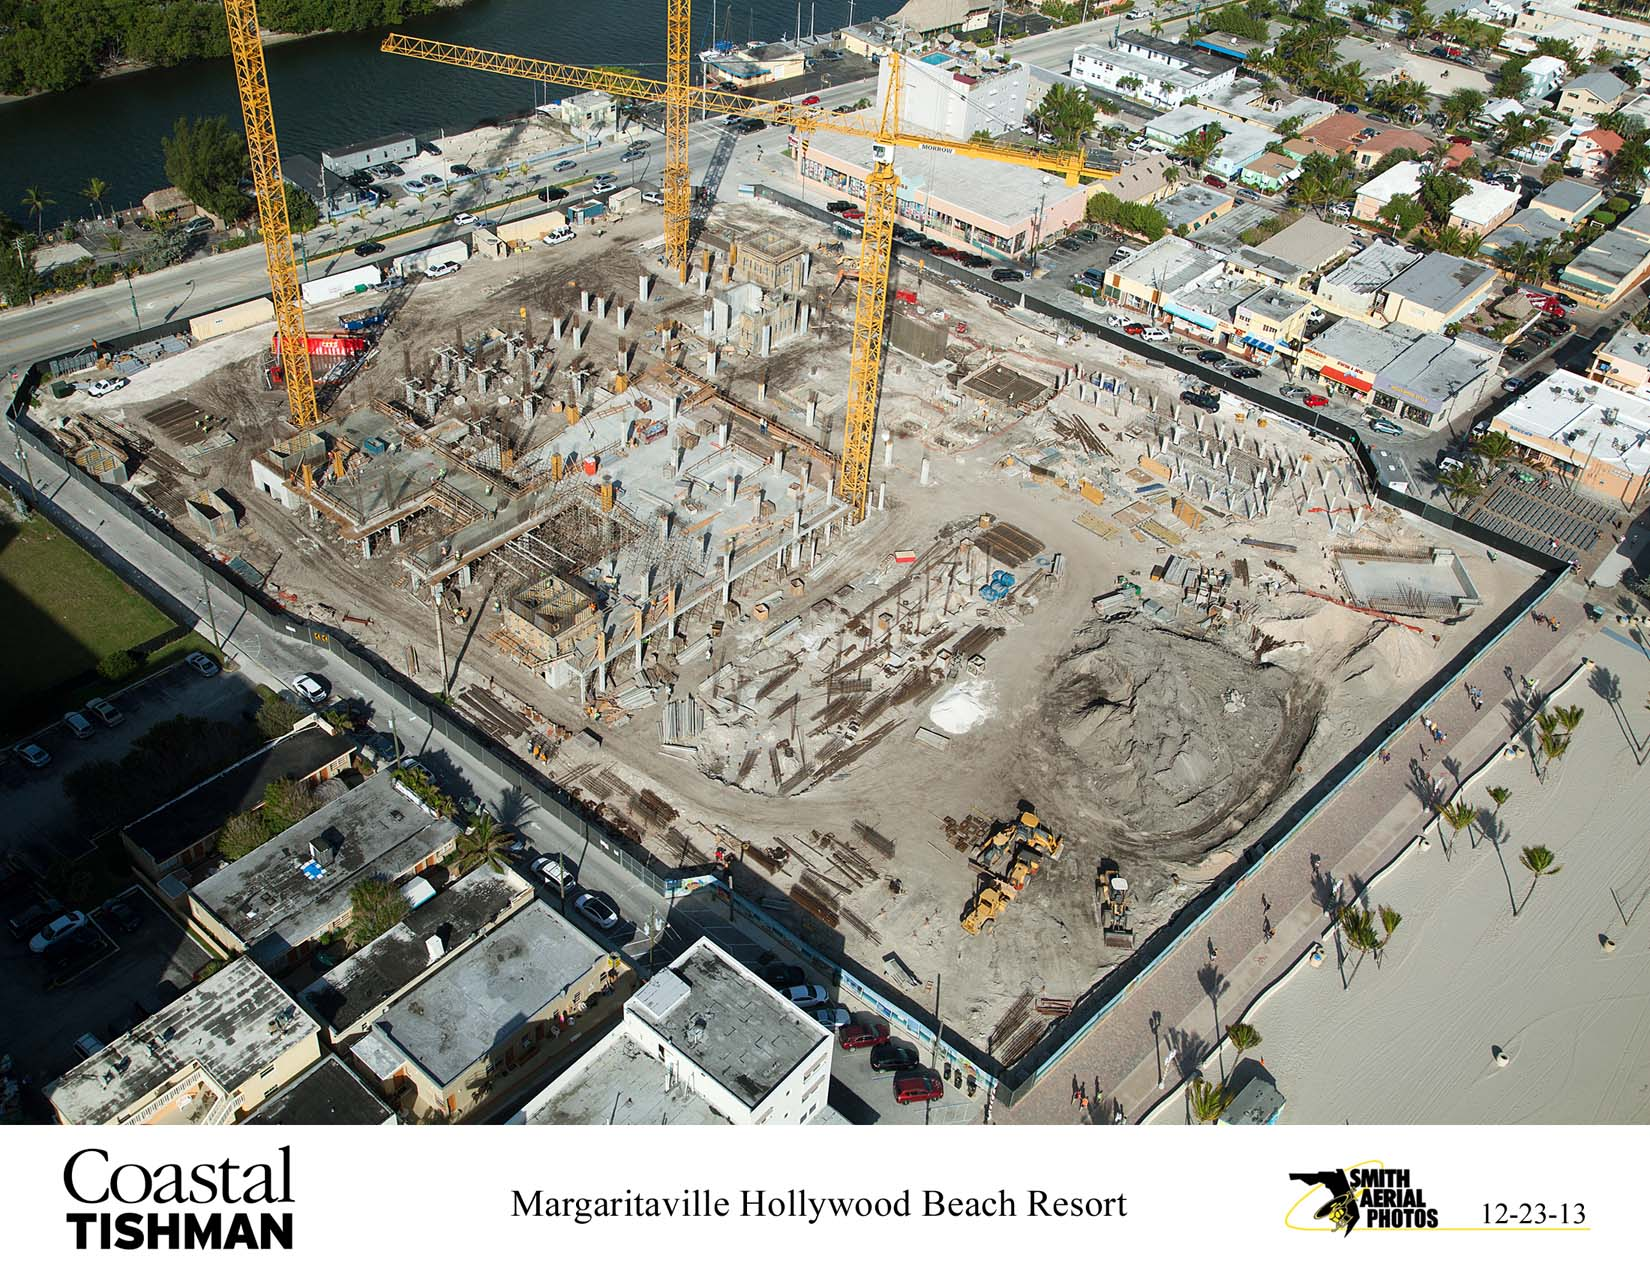 Margaritaville Construction Dec 13 - 3